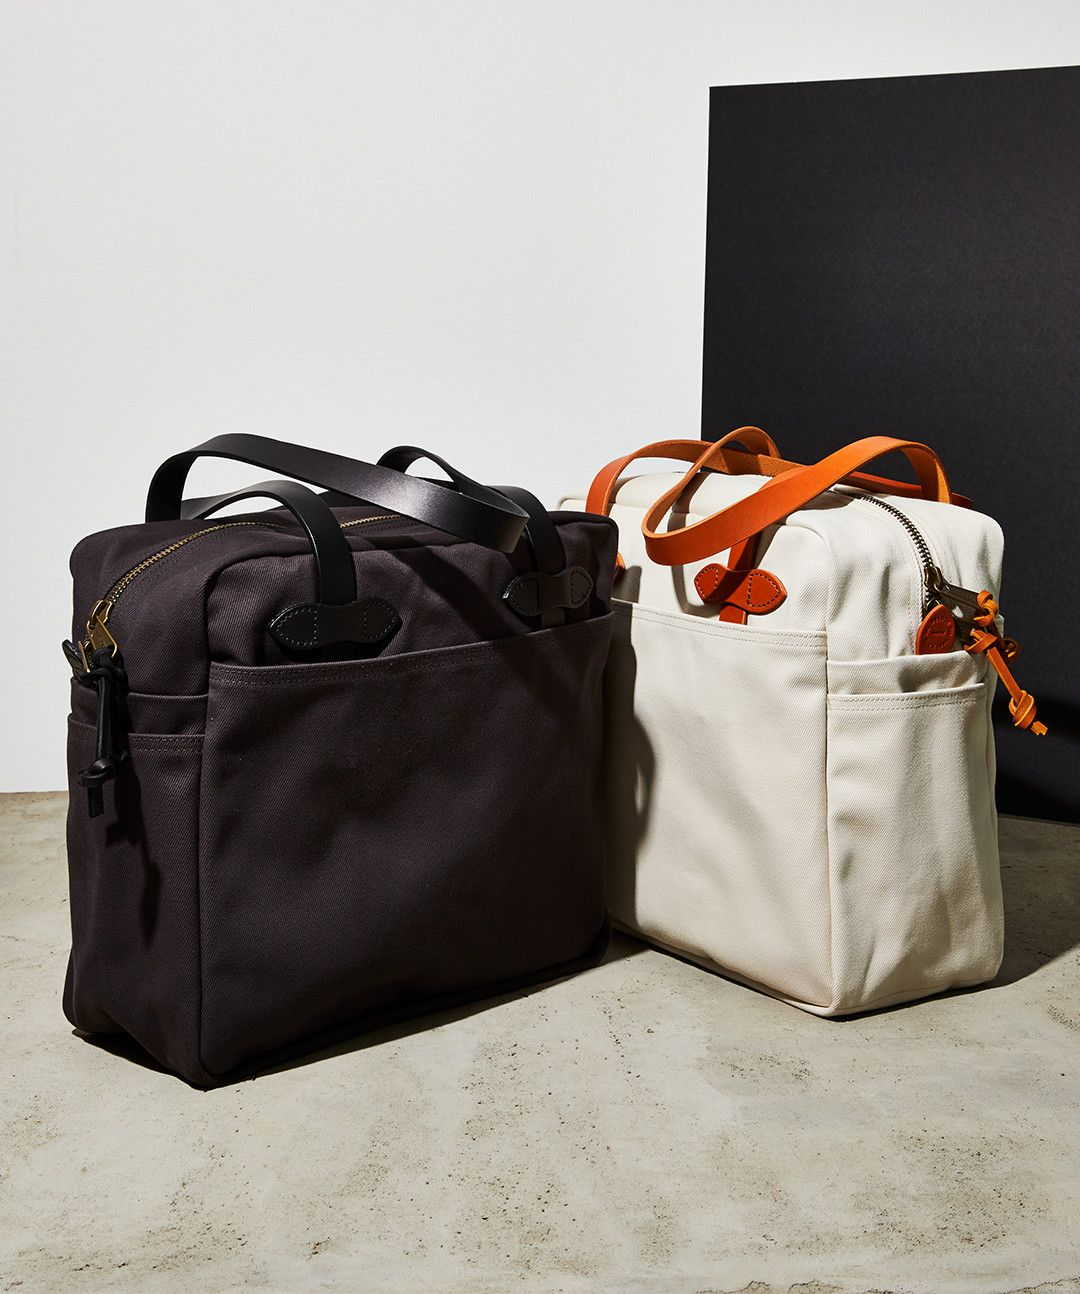 Filson's Zippered Tote Will Convince You to Use a Tote Bag